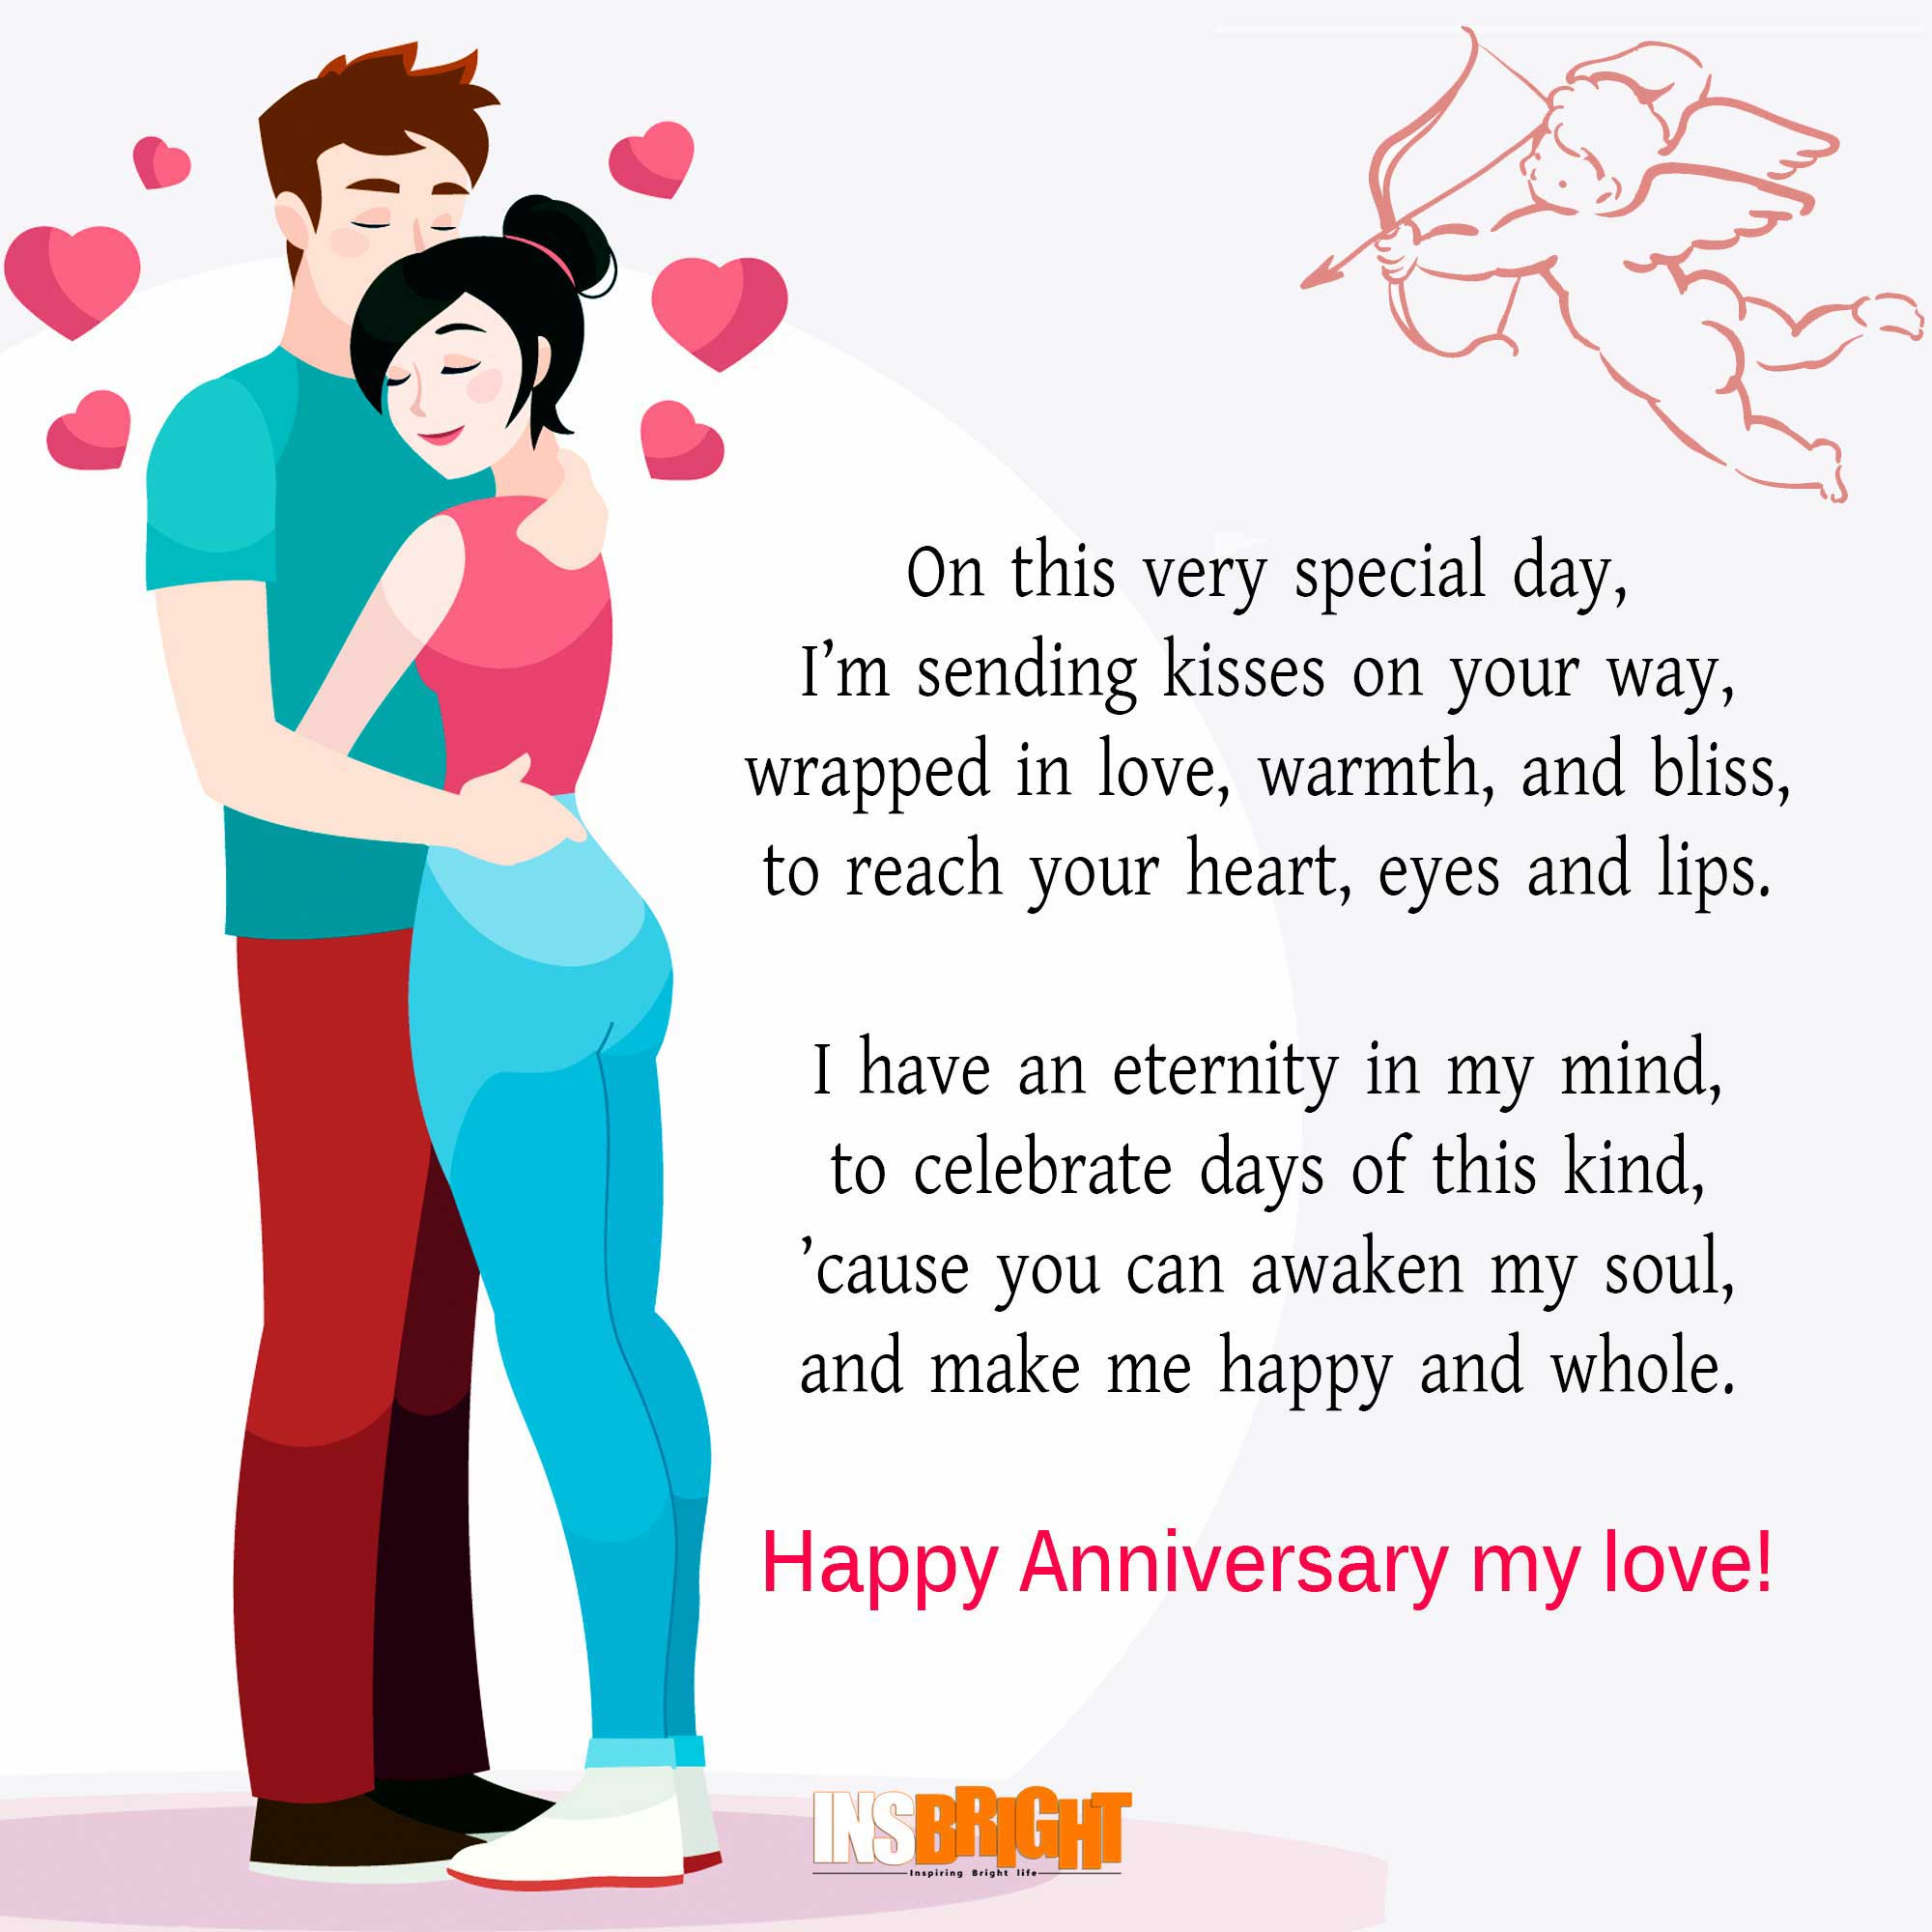 Cute Happy Anniversary Poems For Him Or Her With Images Insbright